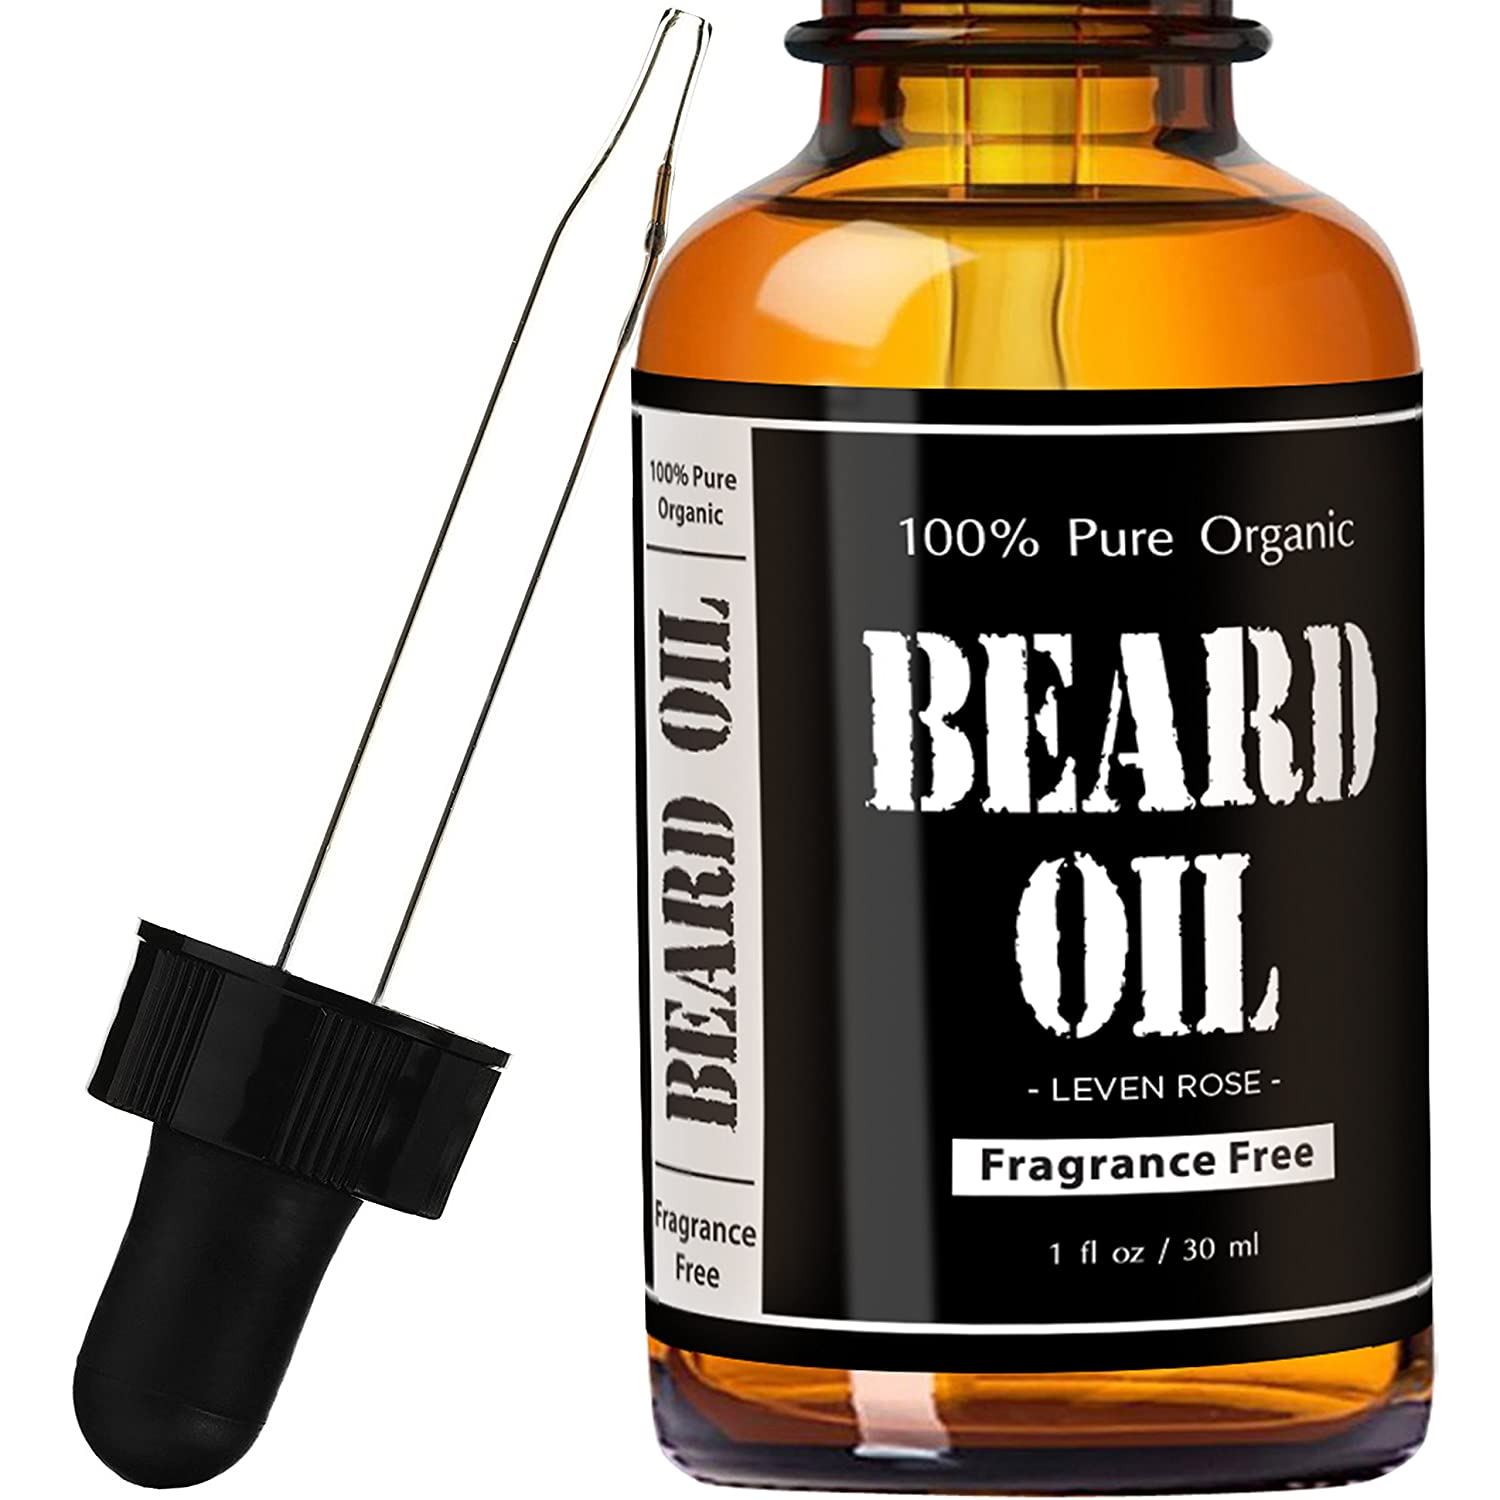 Fragrance Free Beard Oil & Leave In Conditioner by Leven Rose, 100% Pure Natural Organic for Groomed Beards, Mustaches, and Moisturized Skin 1 oz